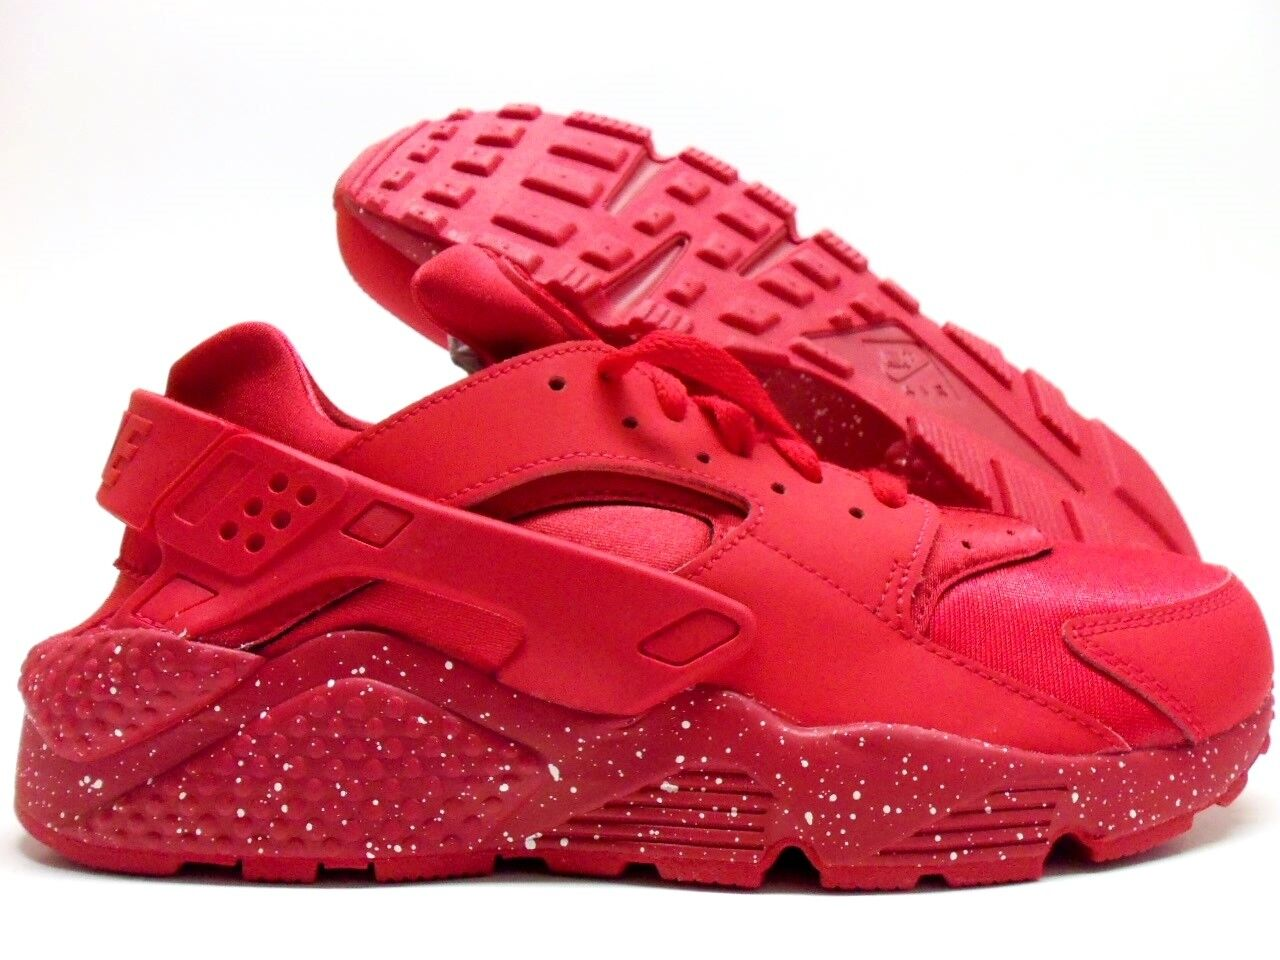 b4969a3b24 NIKE AIR HUARACHE RUN ID RED OCTOBER UNIVERSITY RED SIZE MEN'S 9 ...